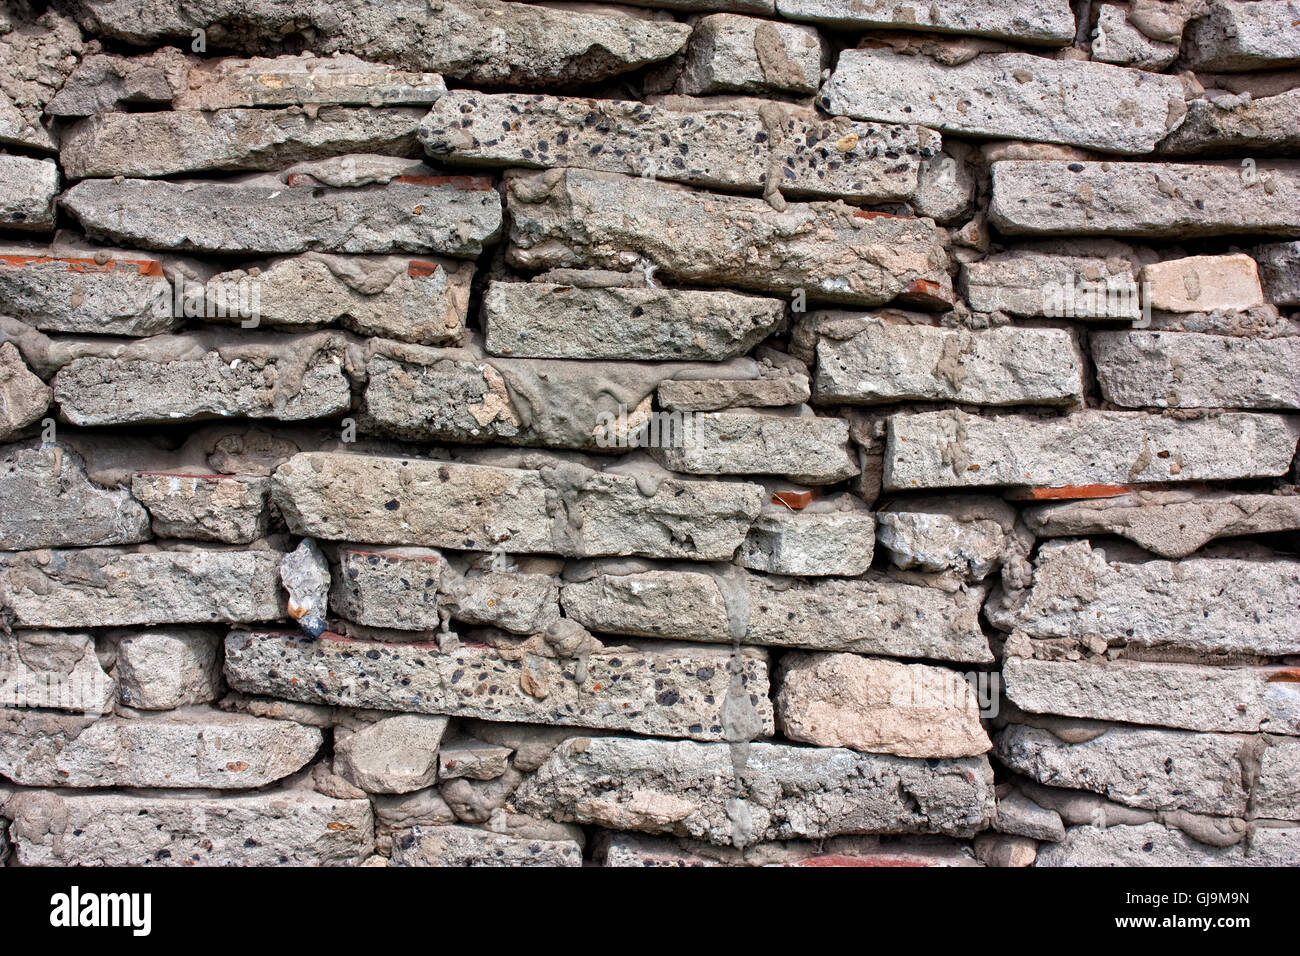 wall of stone - Stock Image